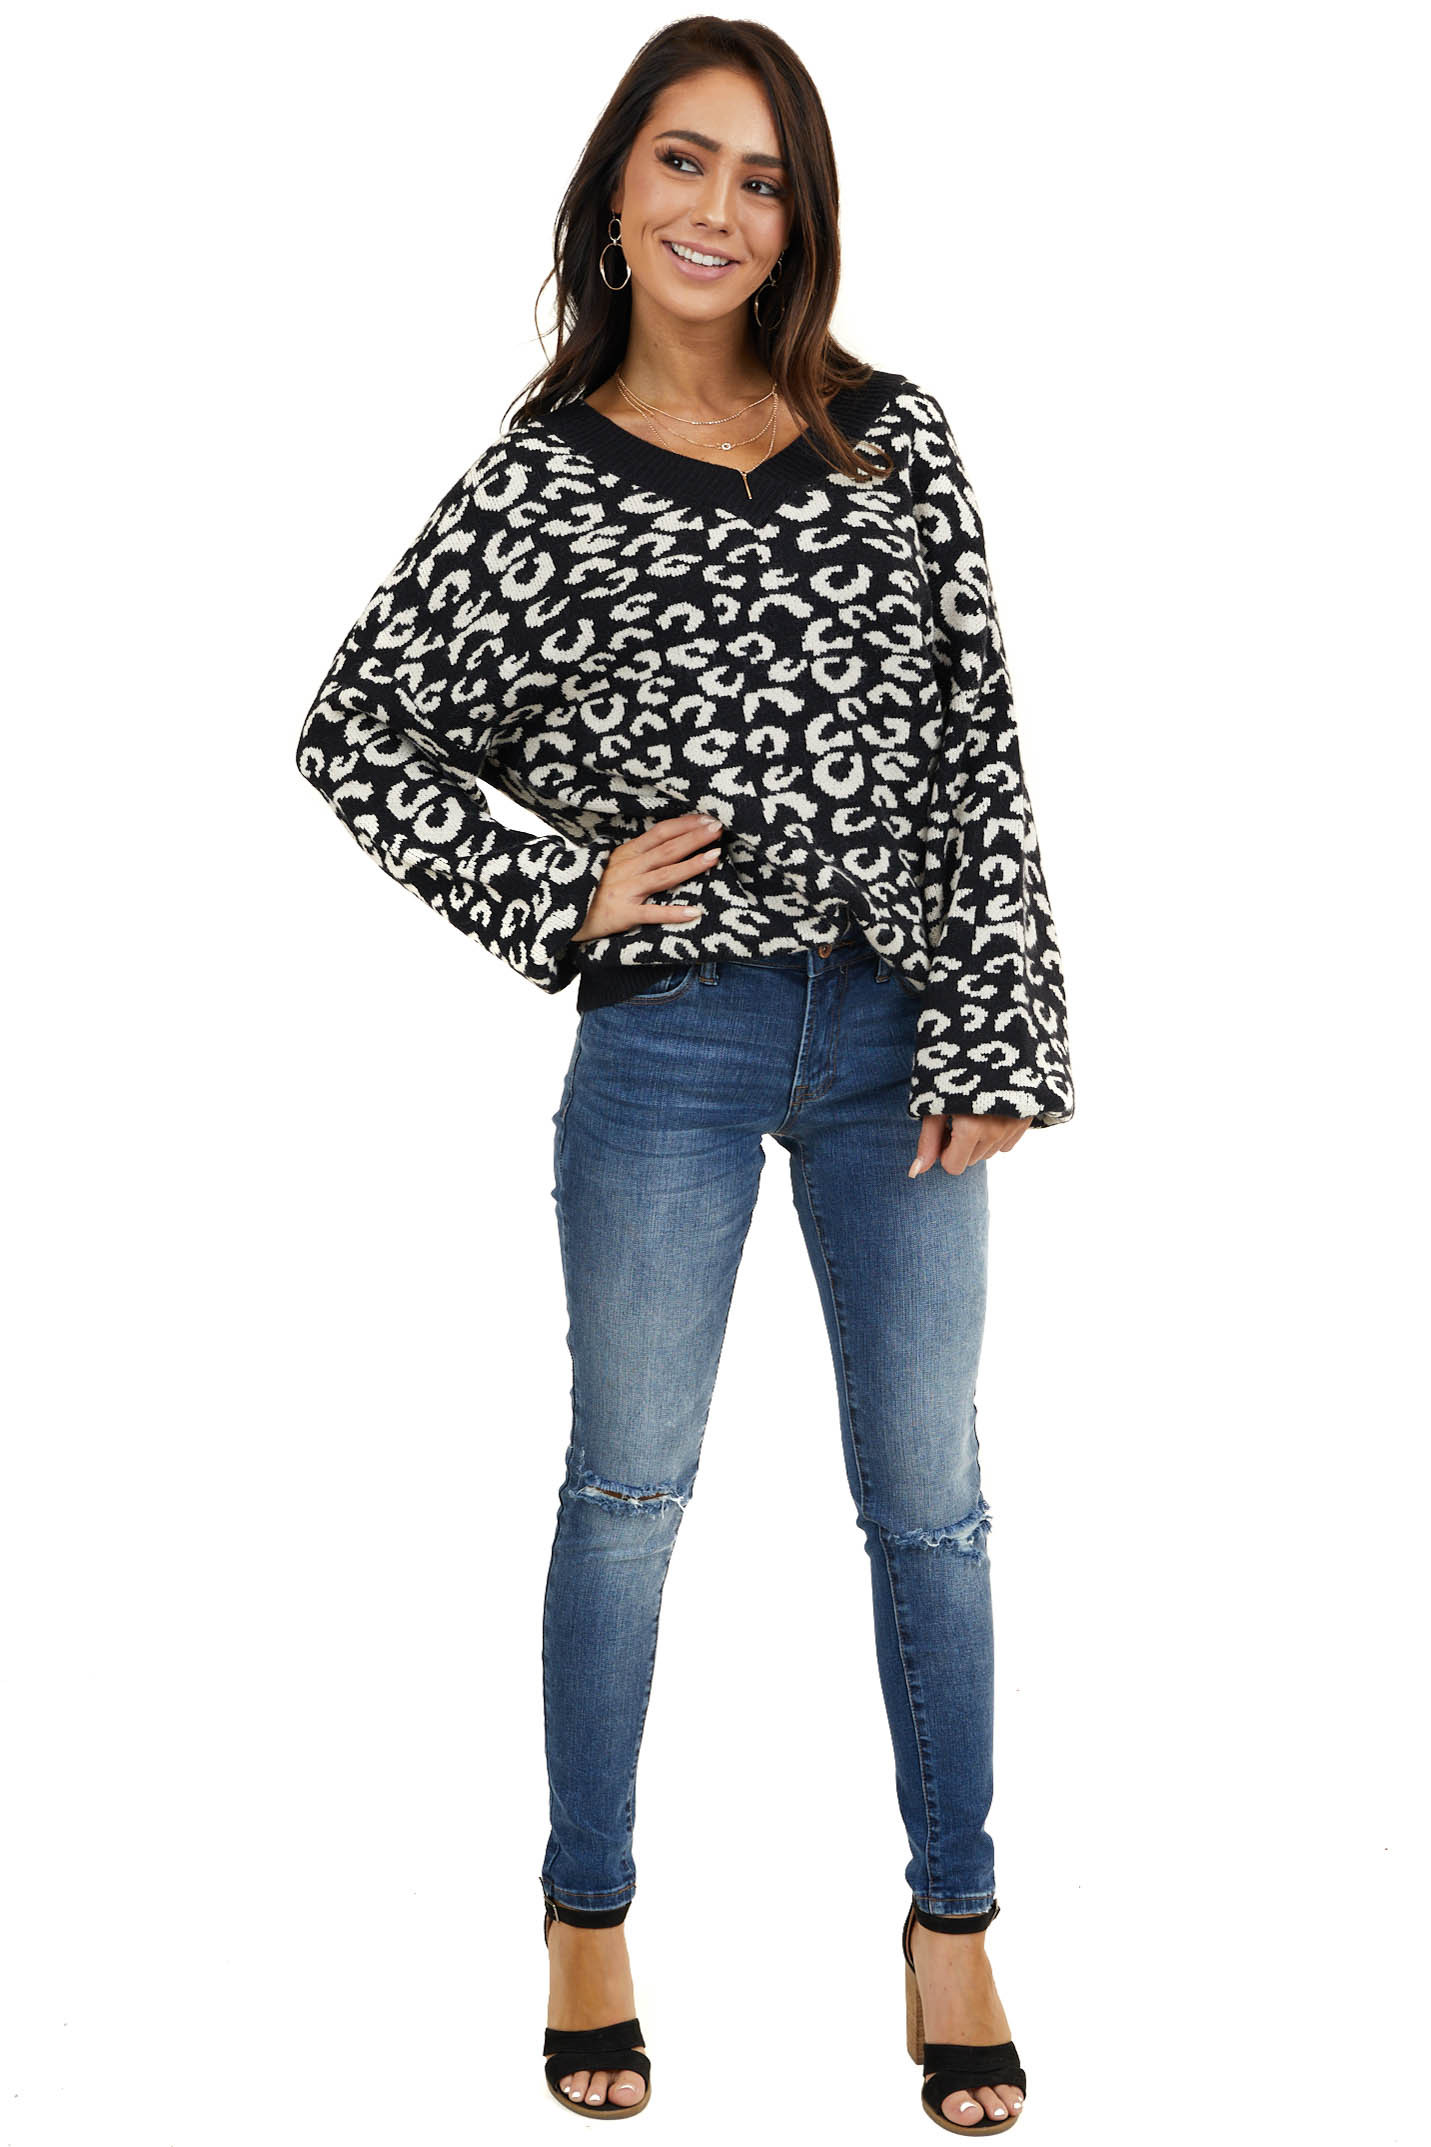 Black Leopard Print V Neck Sweater with Bubble Sleeves